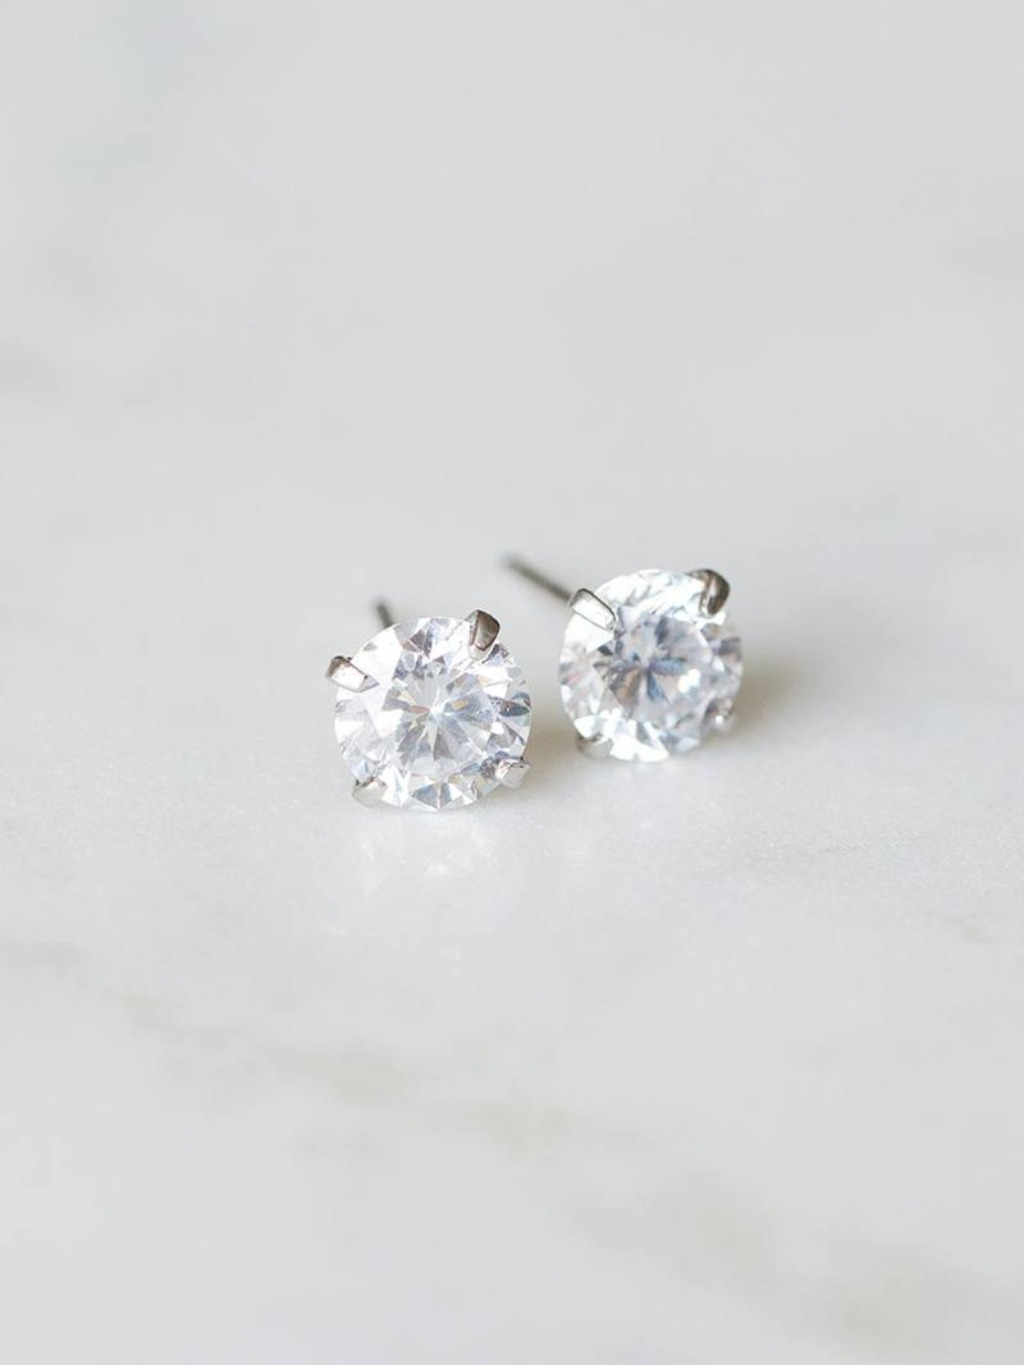 The Zaira Earrings are cubic zirconia mounted on sterling silver posts. They shine beautifully, are made to last—and they're only